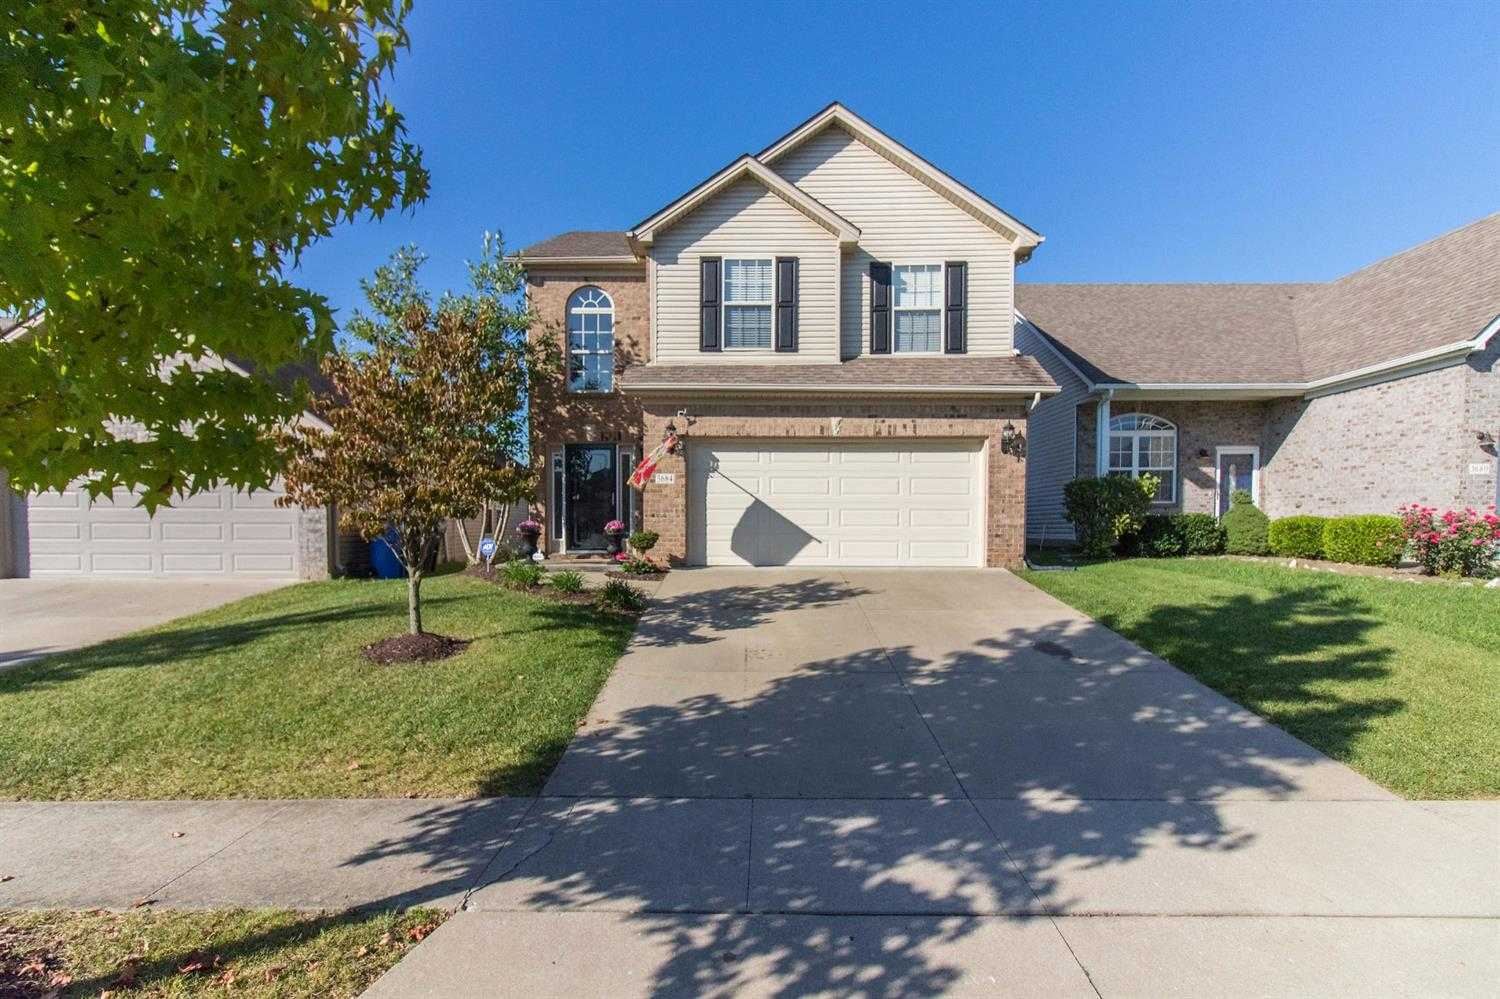 $192,900 - 3Br/3Ba -  for Sale in The Home Place, Lexington